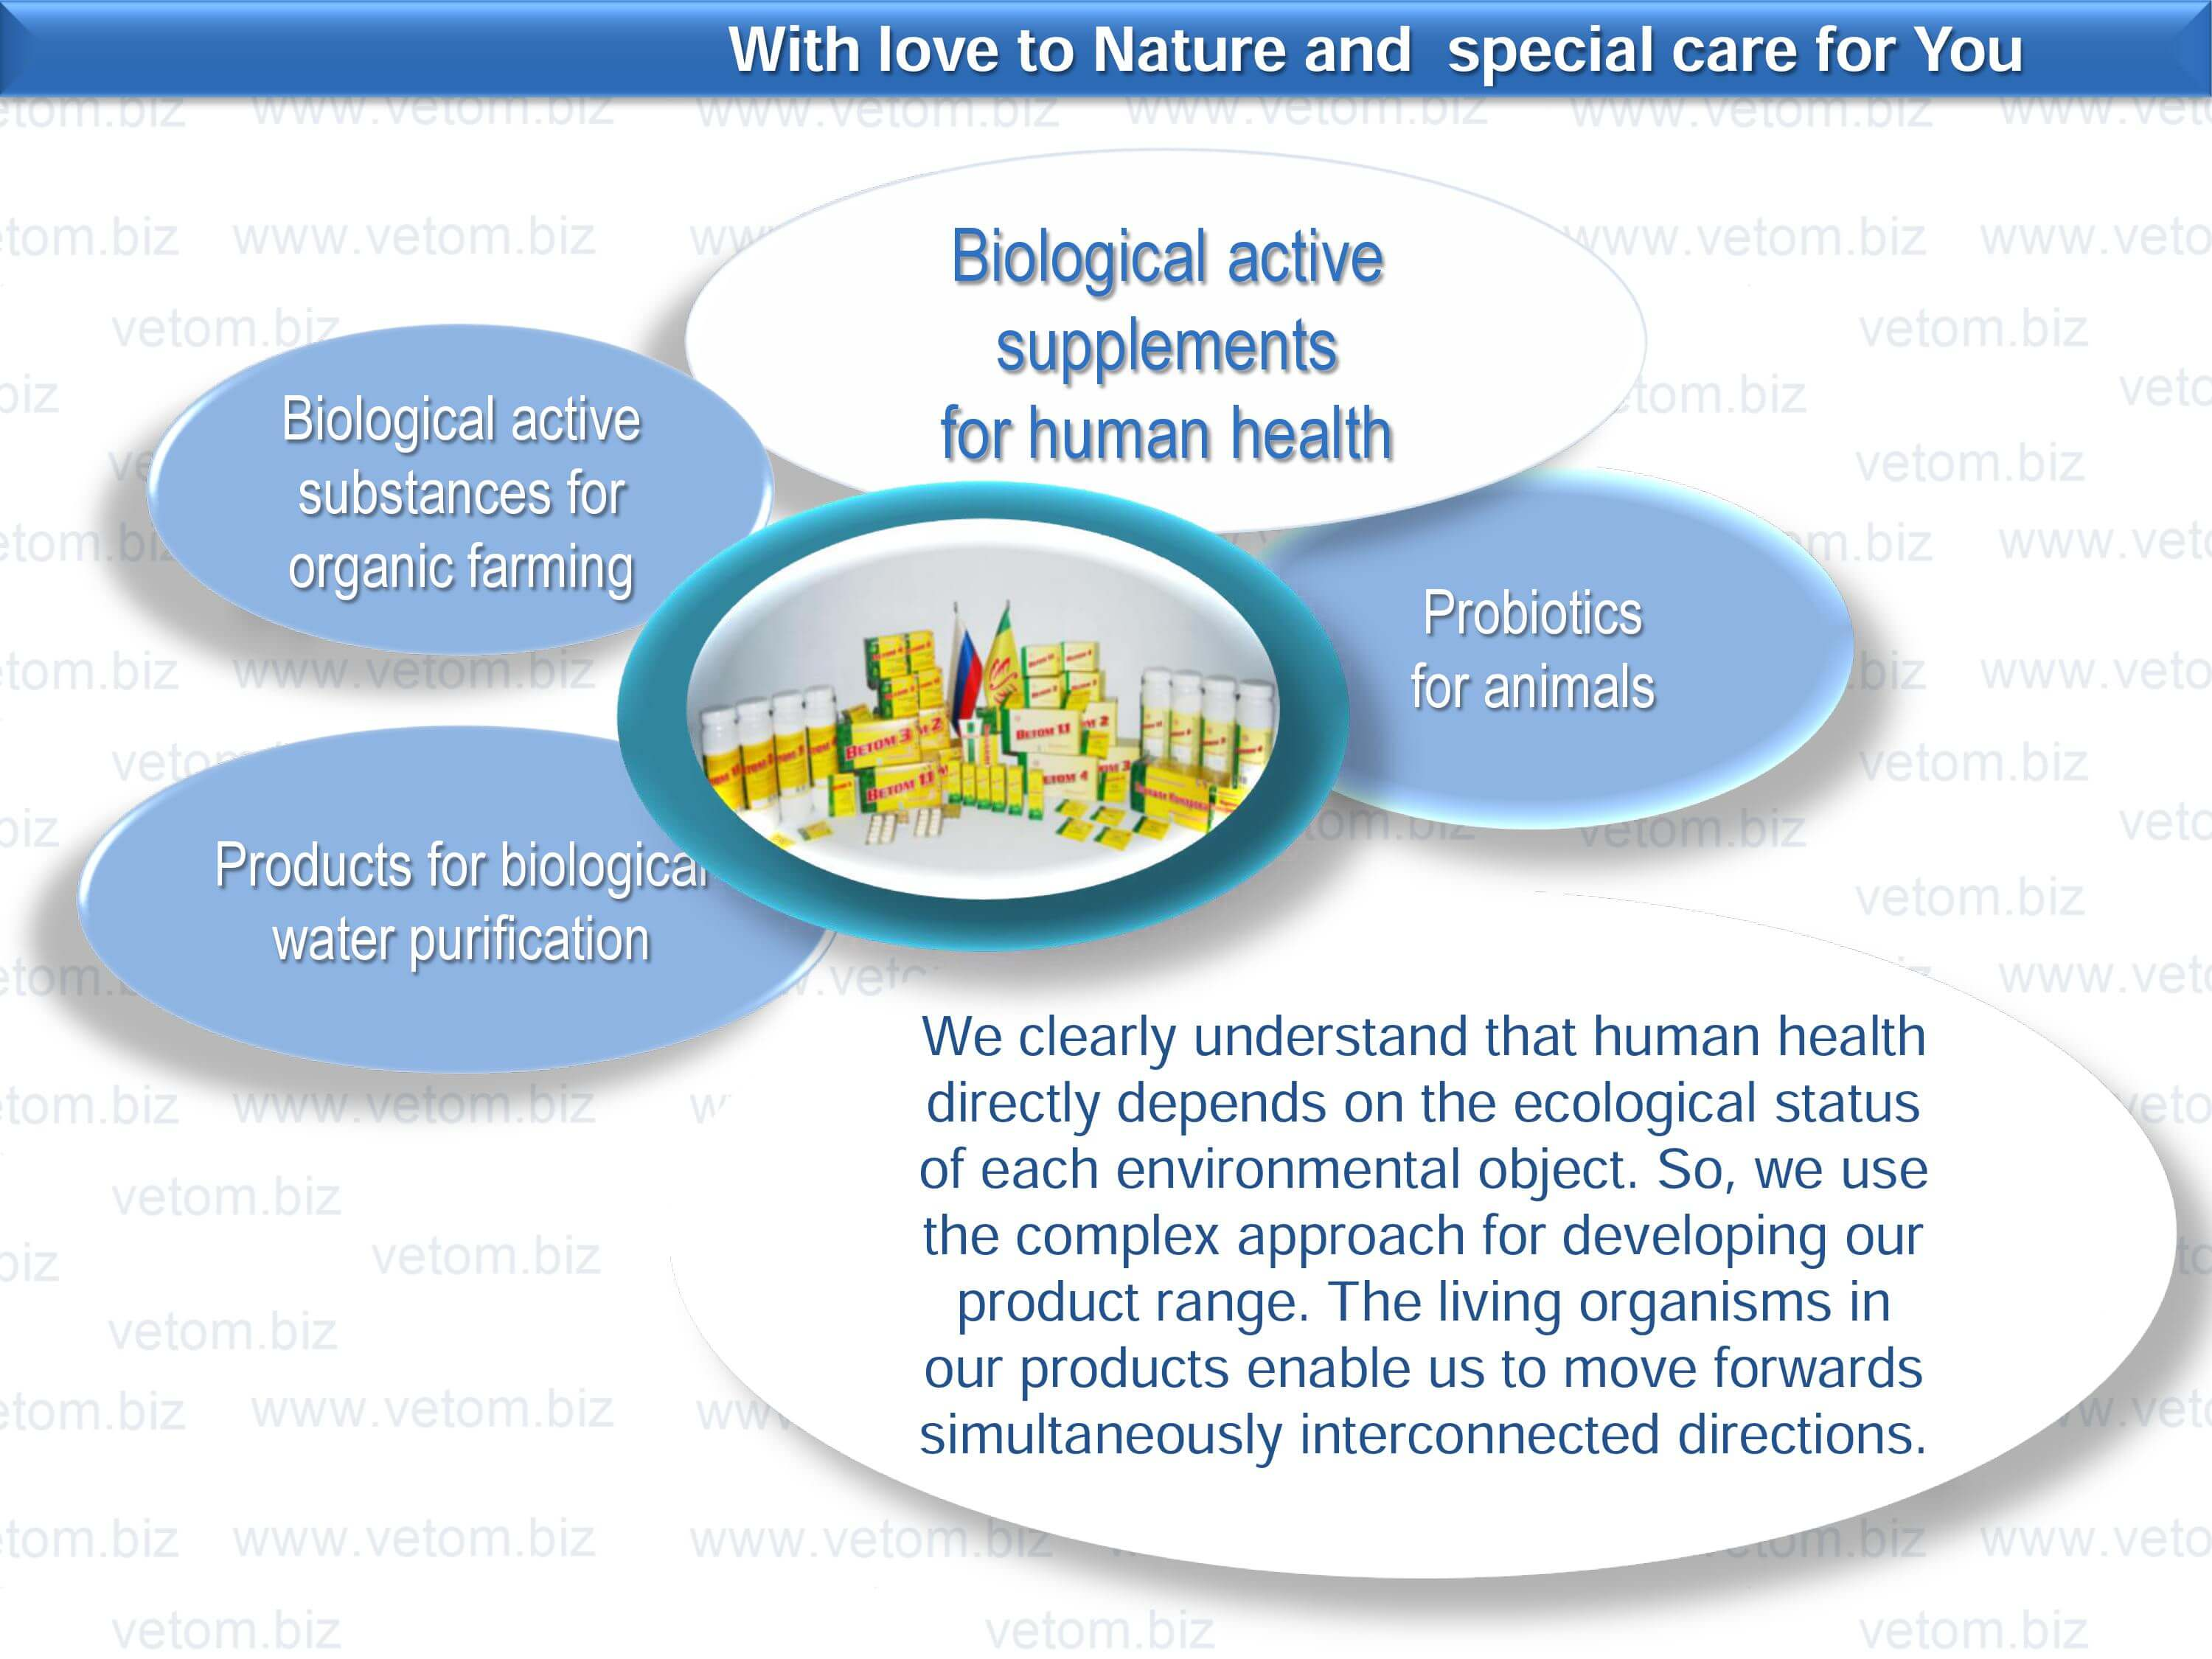 Biological active supplements for human health